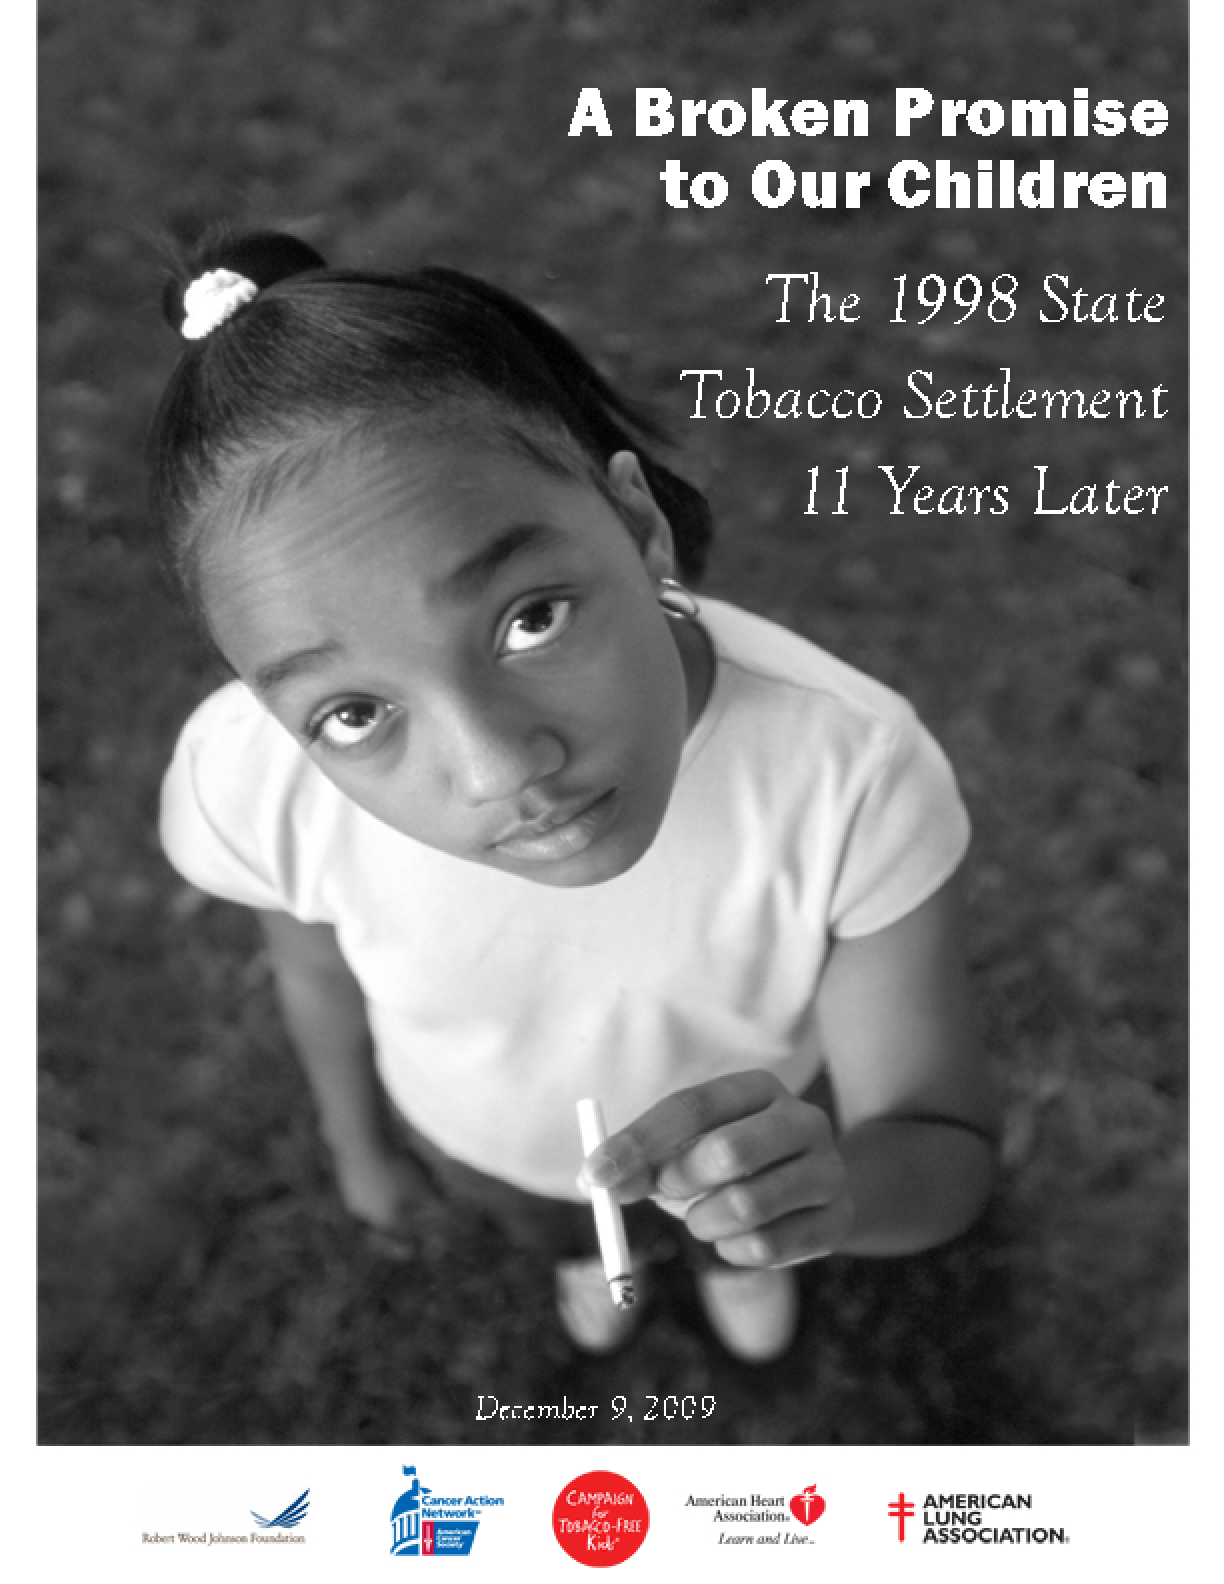 A Broken Promise to Our Children: The 1998 State Tobacco Settlement Eleven Years Later